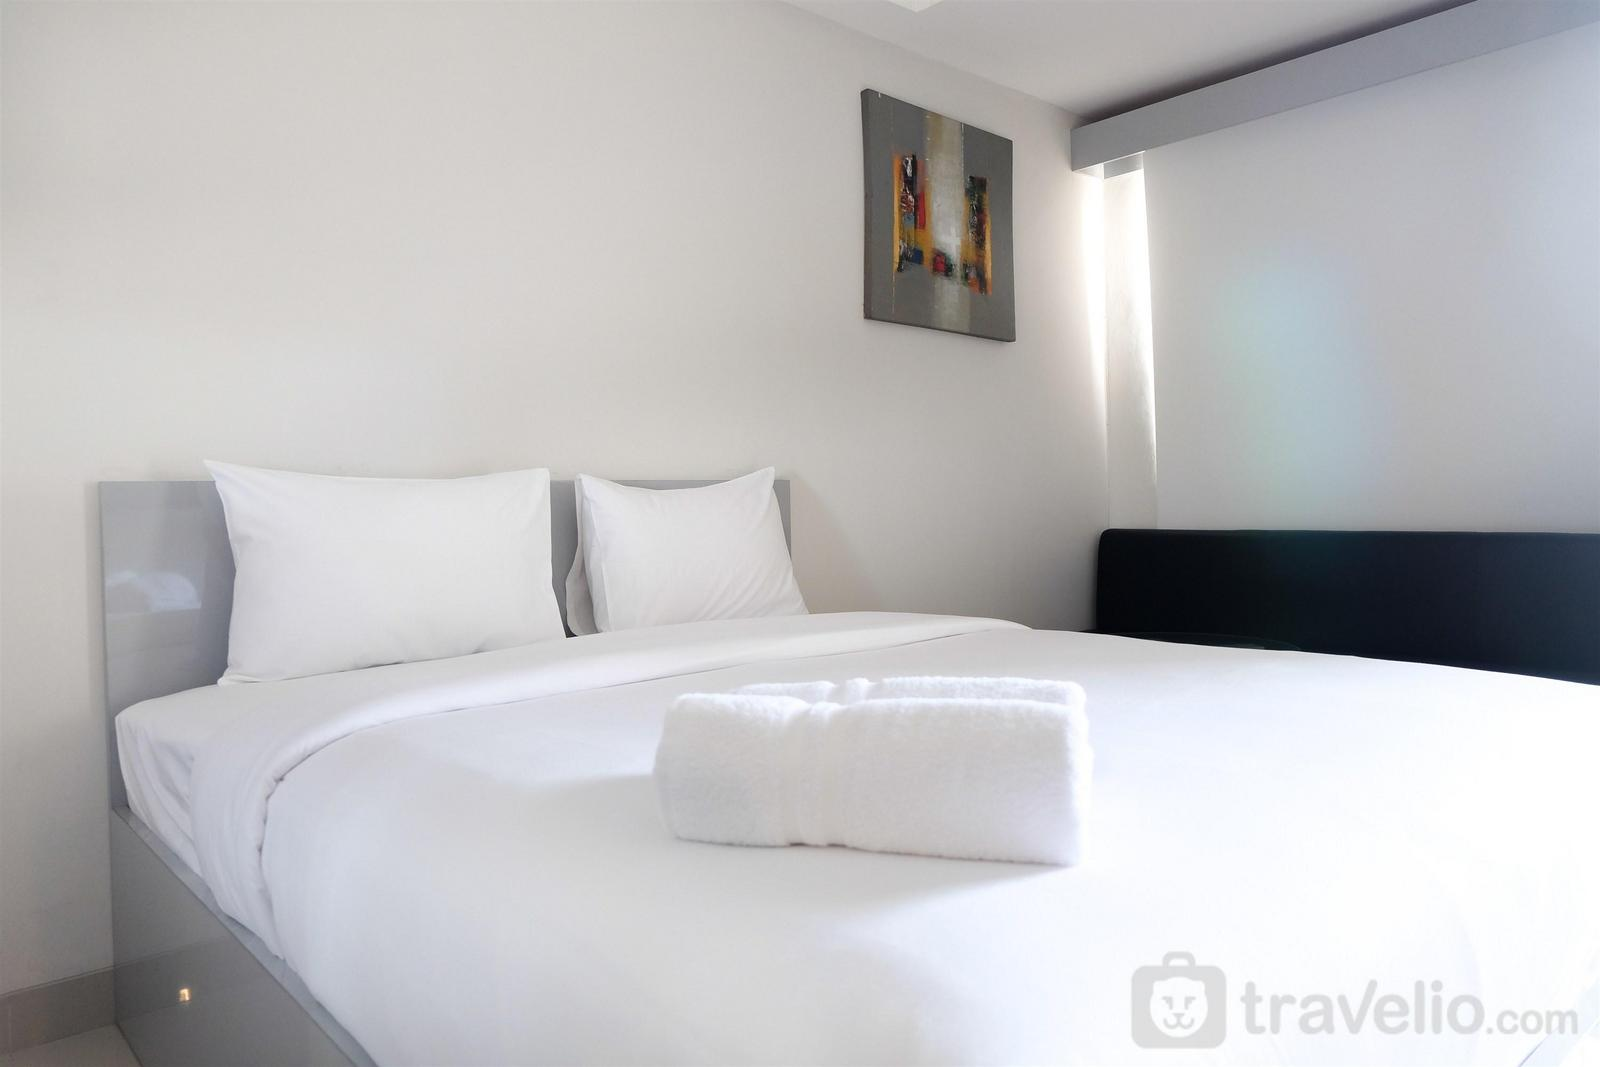 The Oasis Cikarang - Comfy Studio Room The Oasis Apartment By Travelio